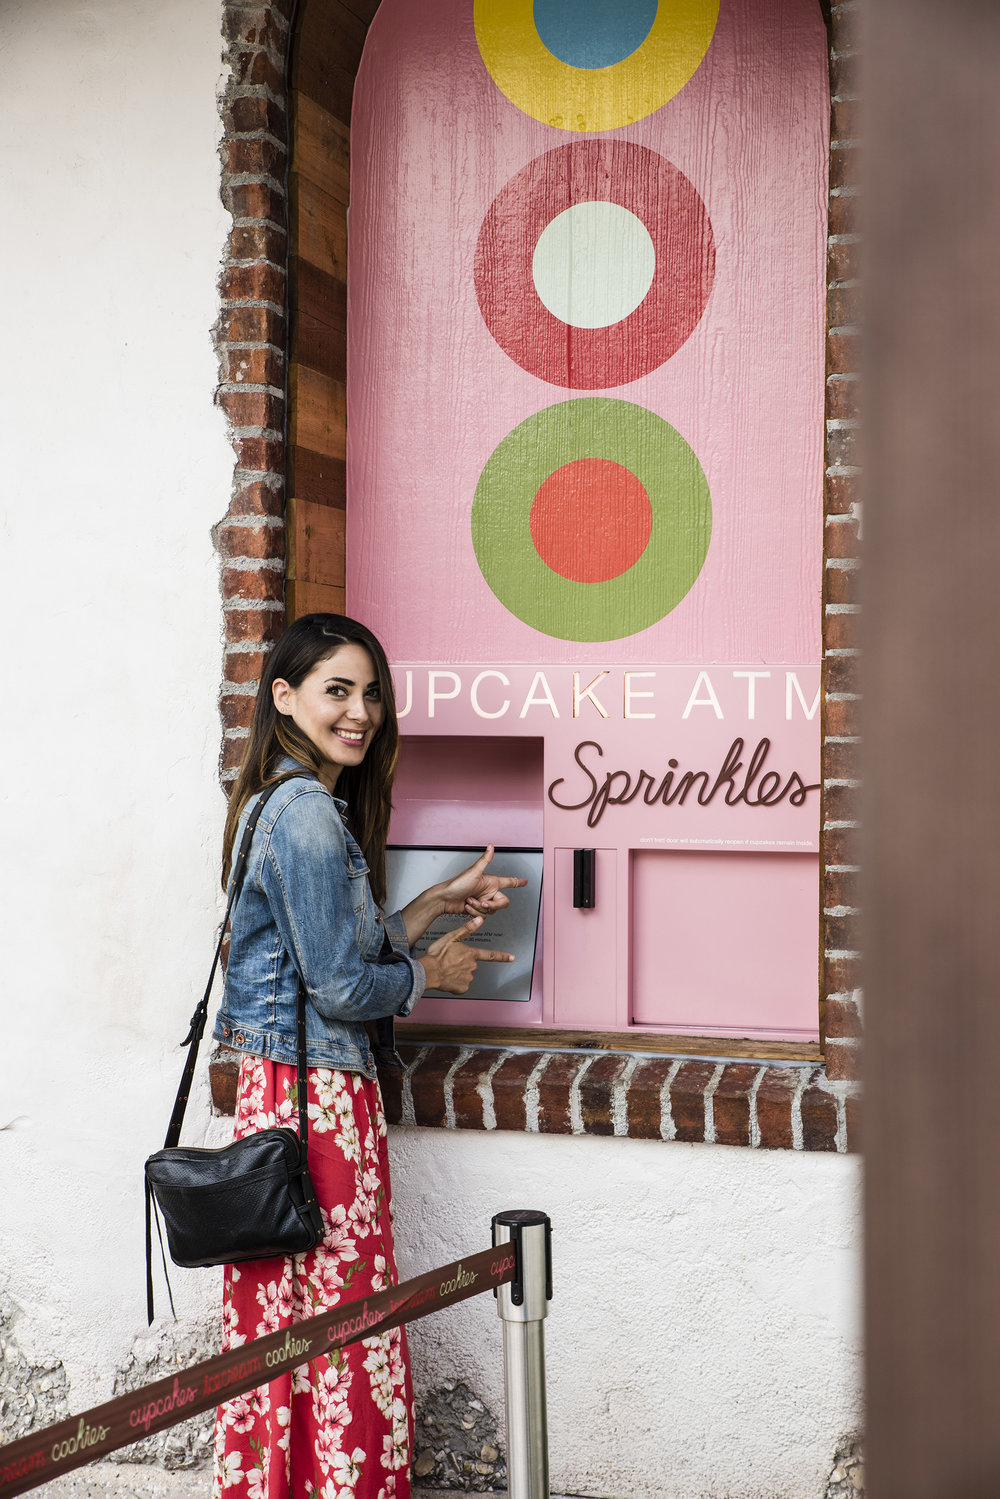 SPRINKLES' FAMOUS CUPCAKE VENDING MACHINE